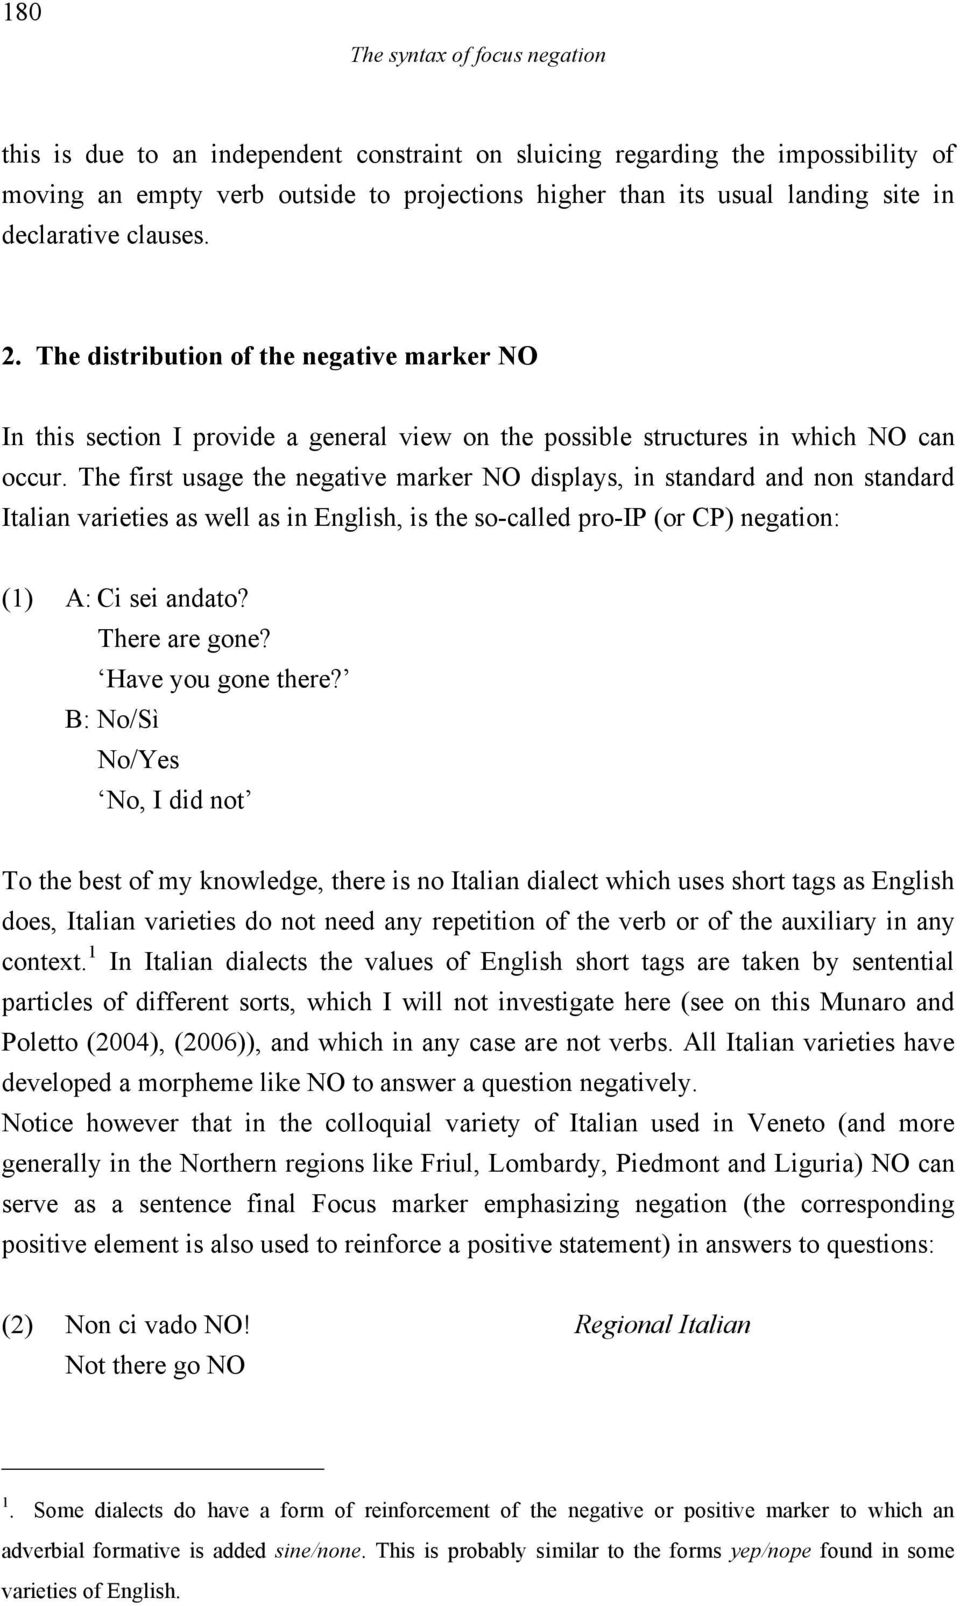 The first usage the negative marker NO displays, in standard and non standard Italian varieties as well as in English, is the so-called pro-ip (or CP) negation: (1) A: Ci sei andato? There are gone?